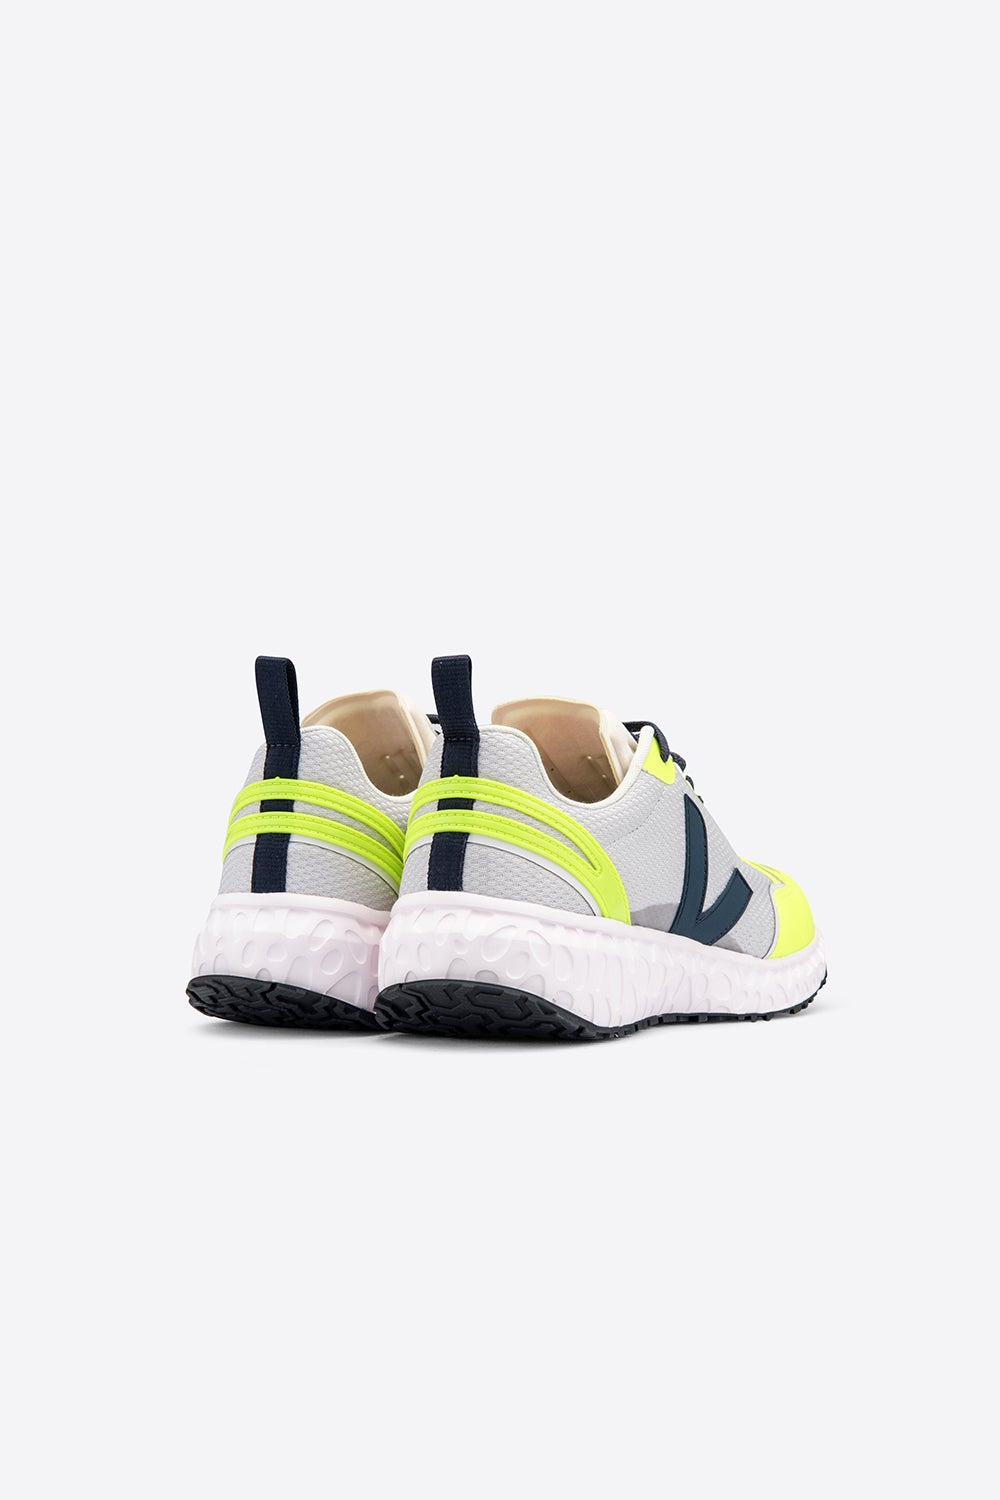 Veja Condor Light Grey/Neon Yellow